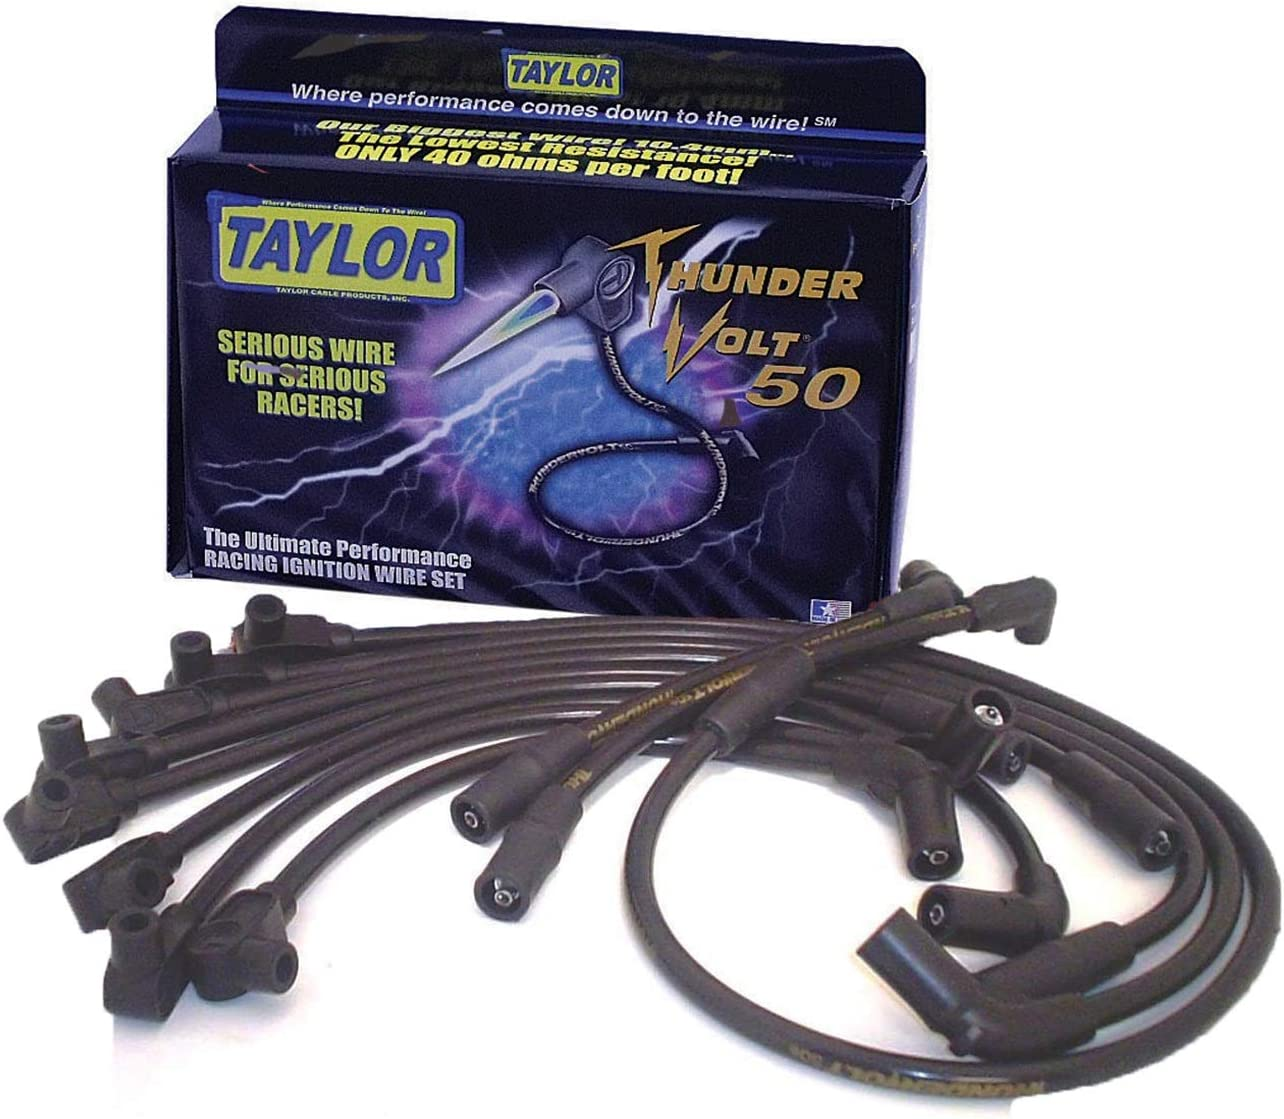 Taylor Cable 98033 ThunderVolt 50 Series Ignition Wire Set